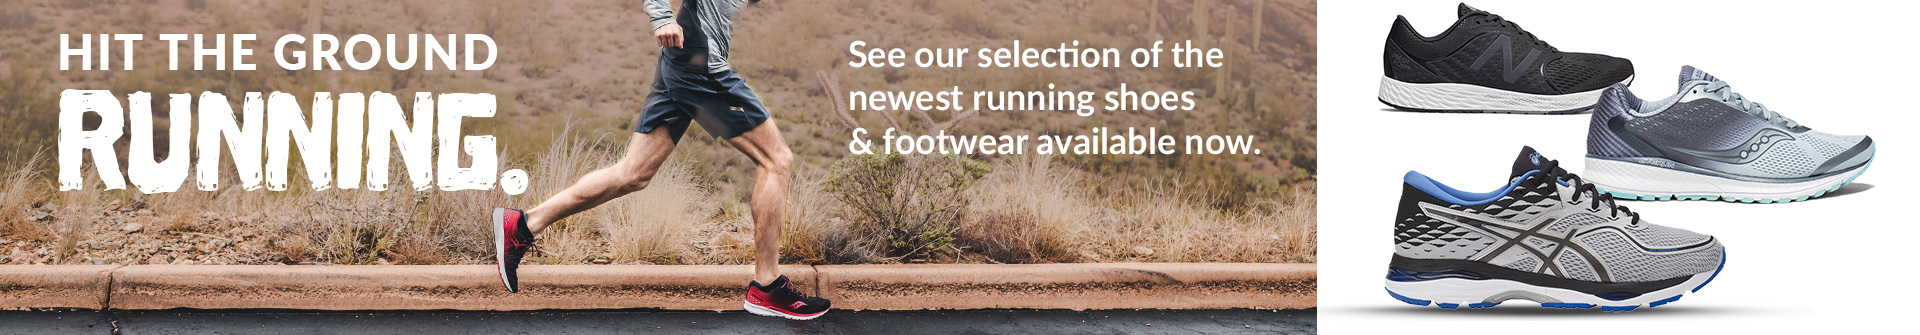 Hit the ground running with the newest athletic running shoes and training shoes from New Balance, Saucony, Asics, Under Armour, Puma & More available for sale at your local Source For Sports store near you.